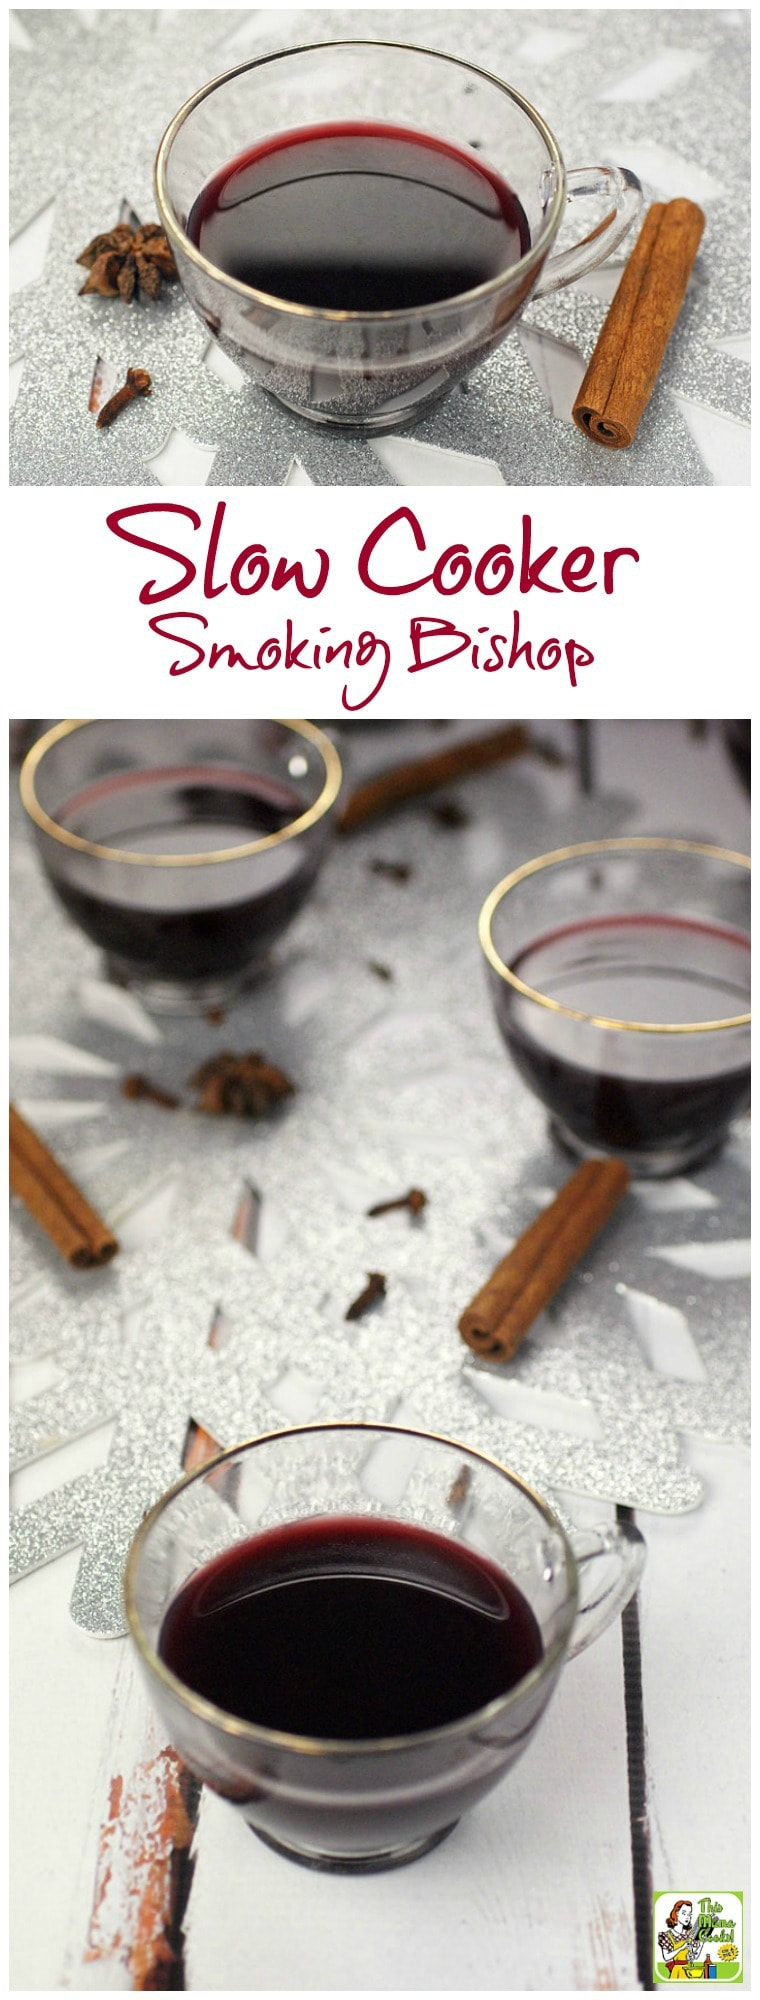 Need a mulled spiced wine recipe for a Christmas or New Year\'s Eve party? Smoking Bishop is a warmed, spiced fruit wine and port drink. Usually, it takes two days to make, but this recipe cuts the time to half a day by using a slow cooker! Your guests will love this crock-pot party drink recipe! #slowcooker #crockpot #wine #cocktails #mulledwine #drinks #drinking #smokingbishop #drinkrecipe